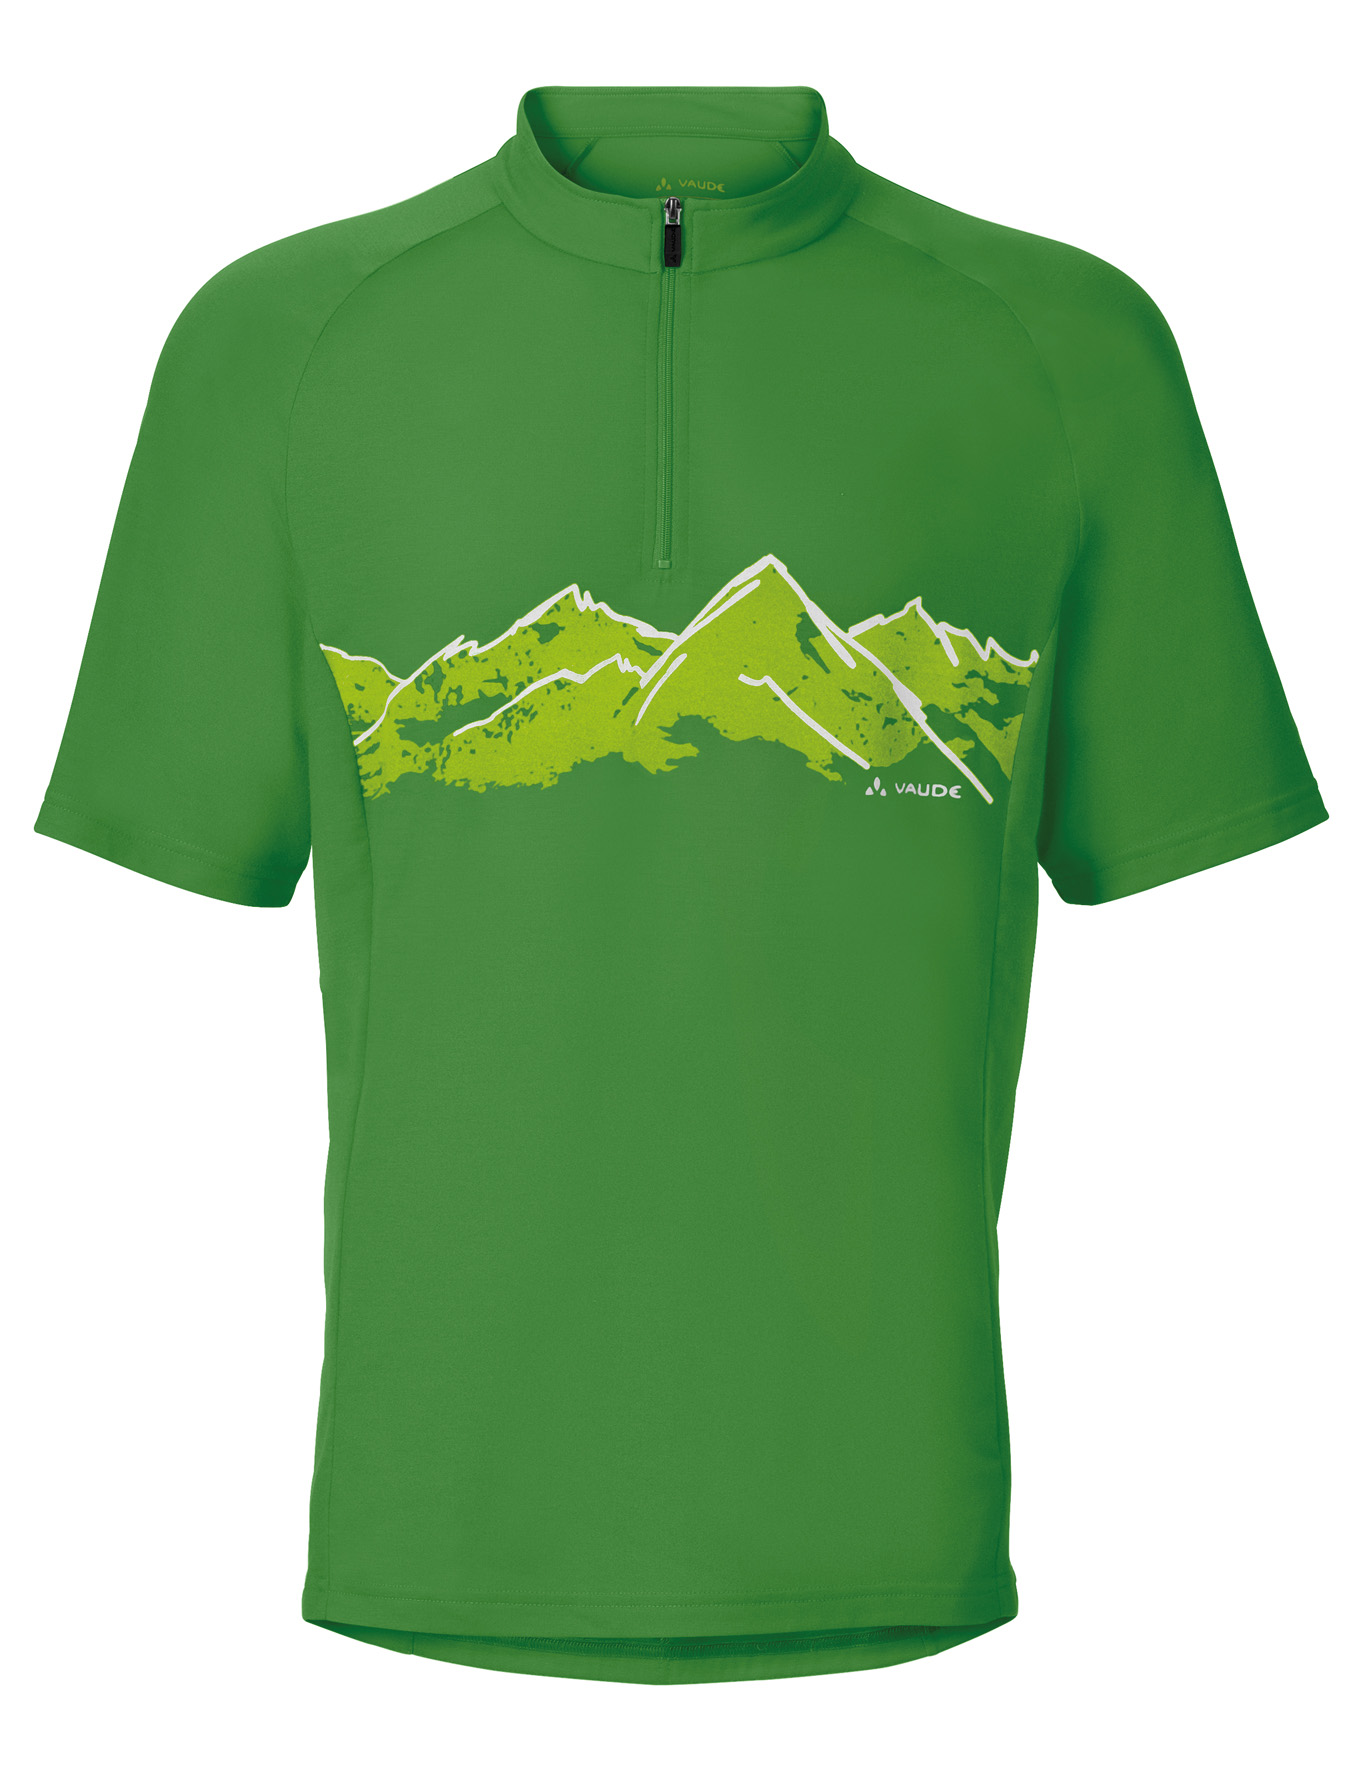 VAUDE Men´s Sentiero Shirt II parrot green Größe XL - schneider-sports